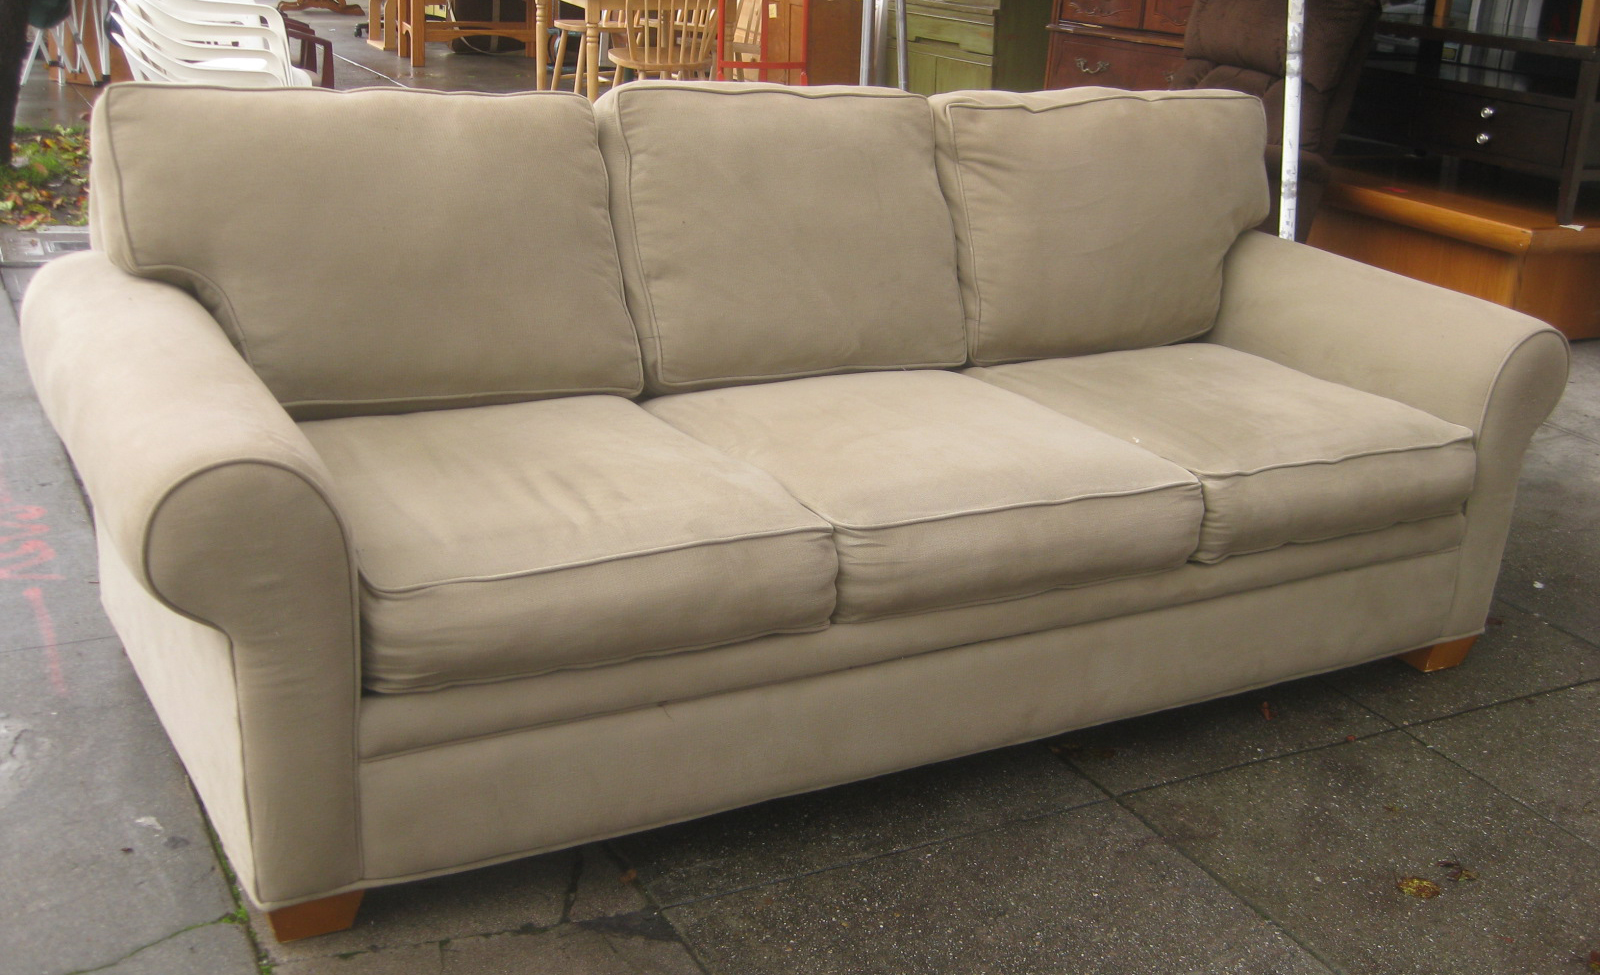 Sofa Donation Comfortable Sleeper Leather Uhuru Furniture And Collectibles Sold Beige 90